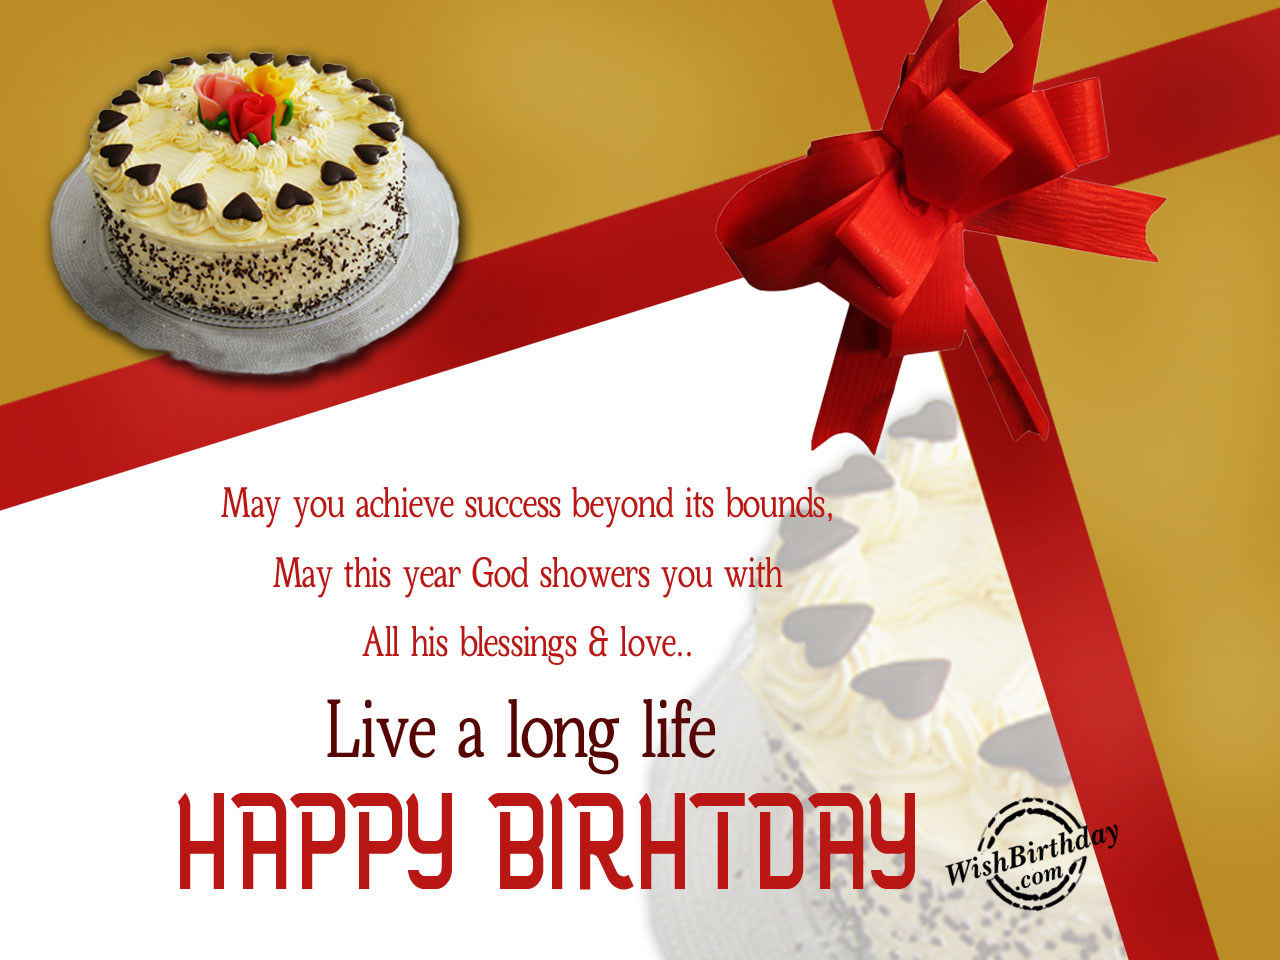 happy birthday wish you good health and long life ; May-you-achieve-success